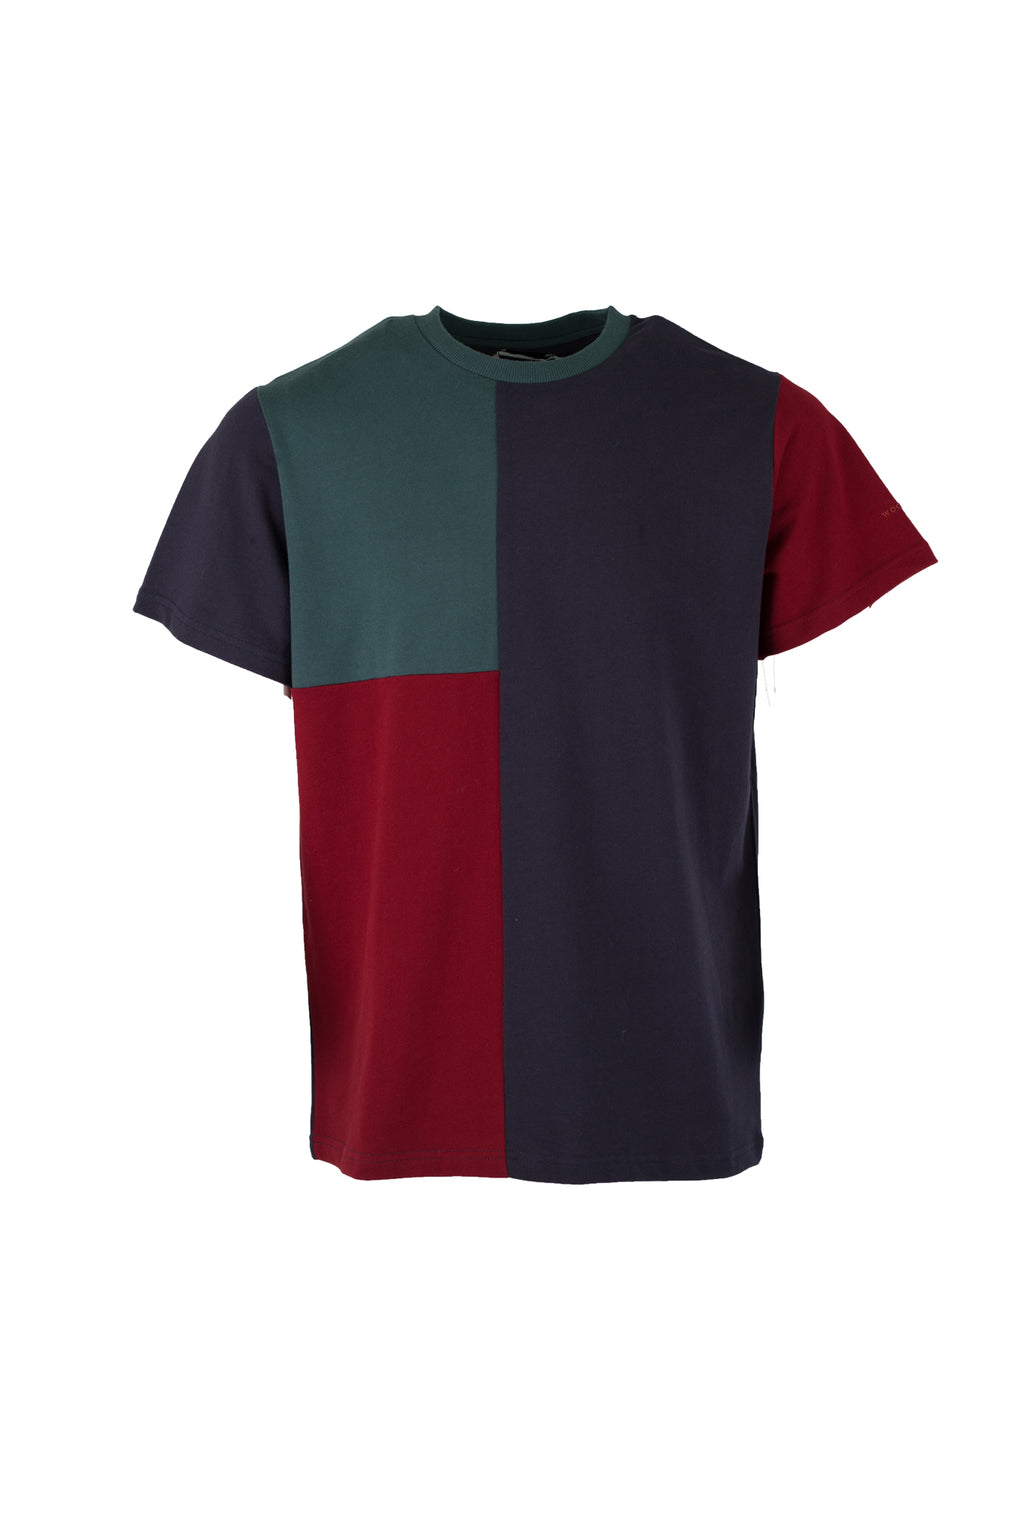 Brat Patchy Tee - Multi Colored - Audace Copenhagen